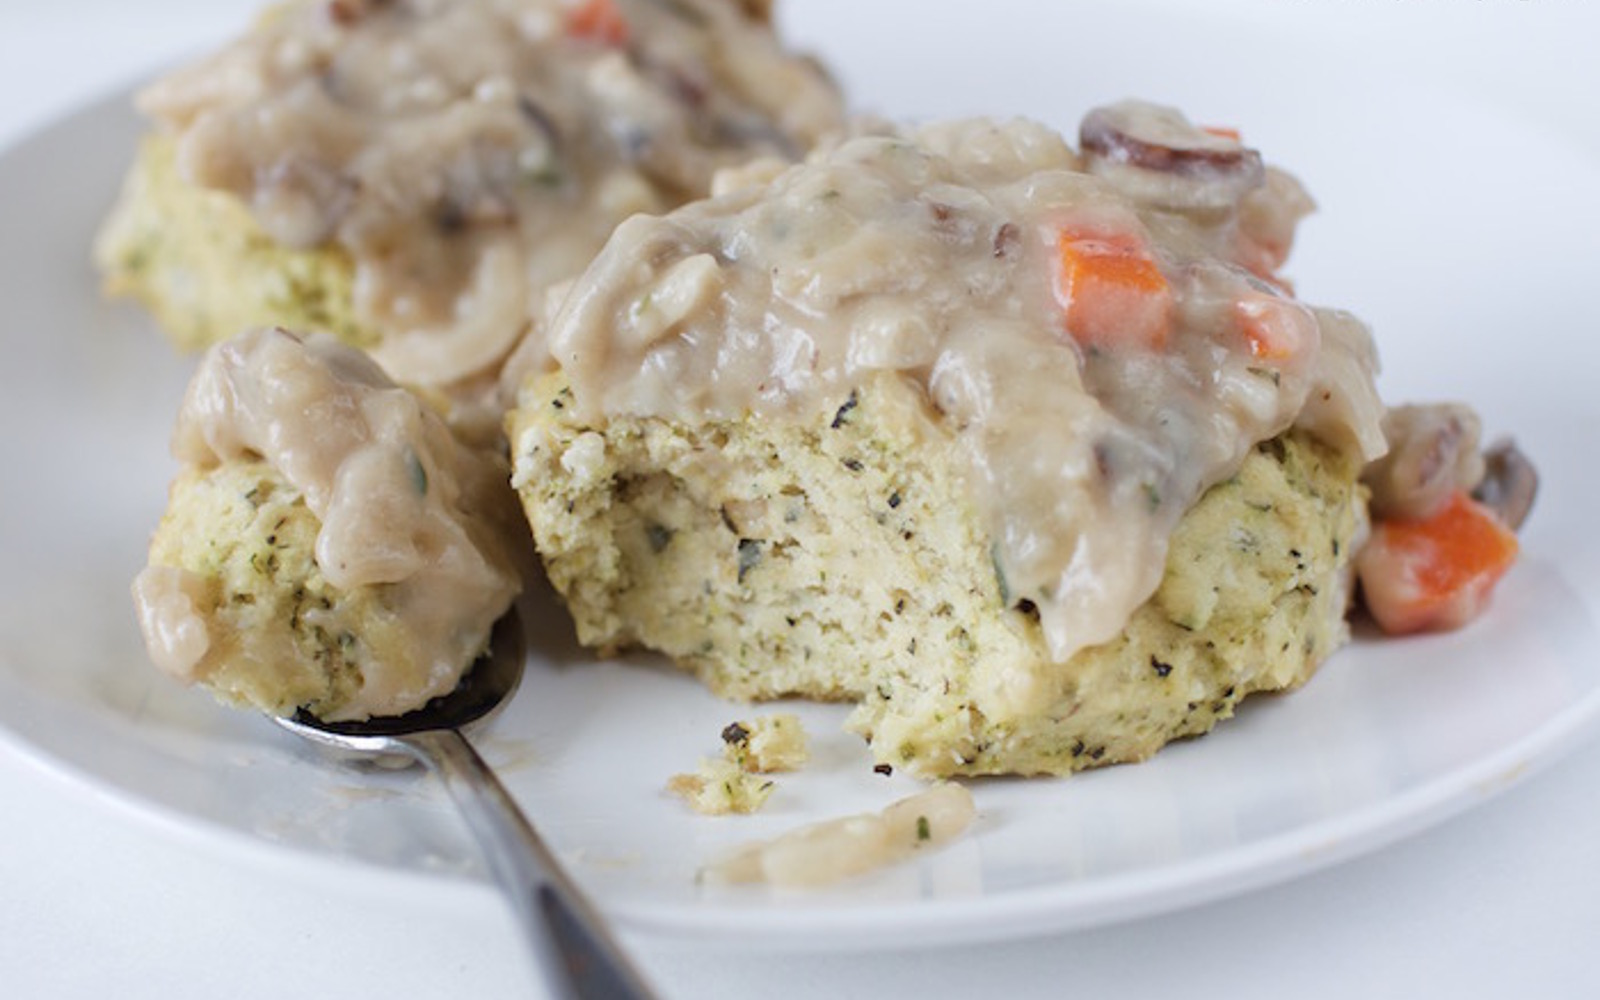 Herbed Biscuits With Mushroom Gravy